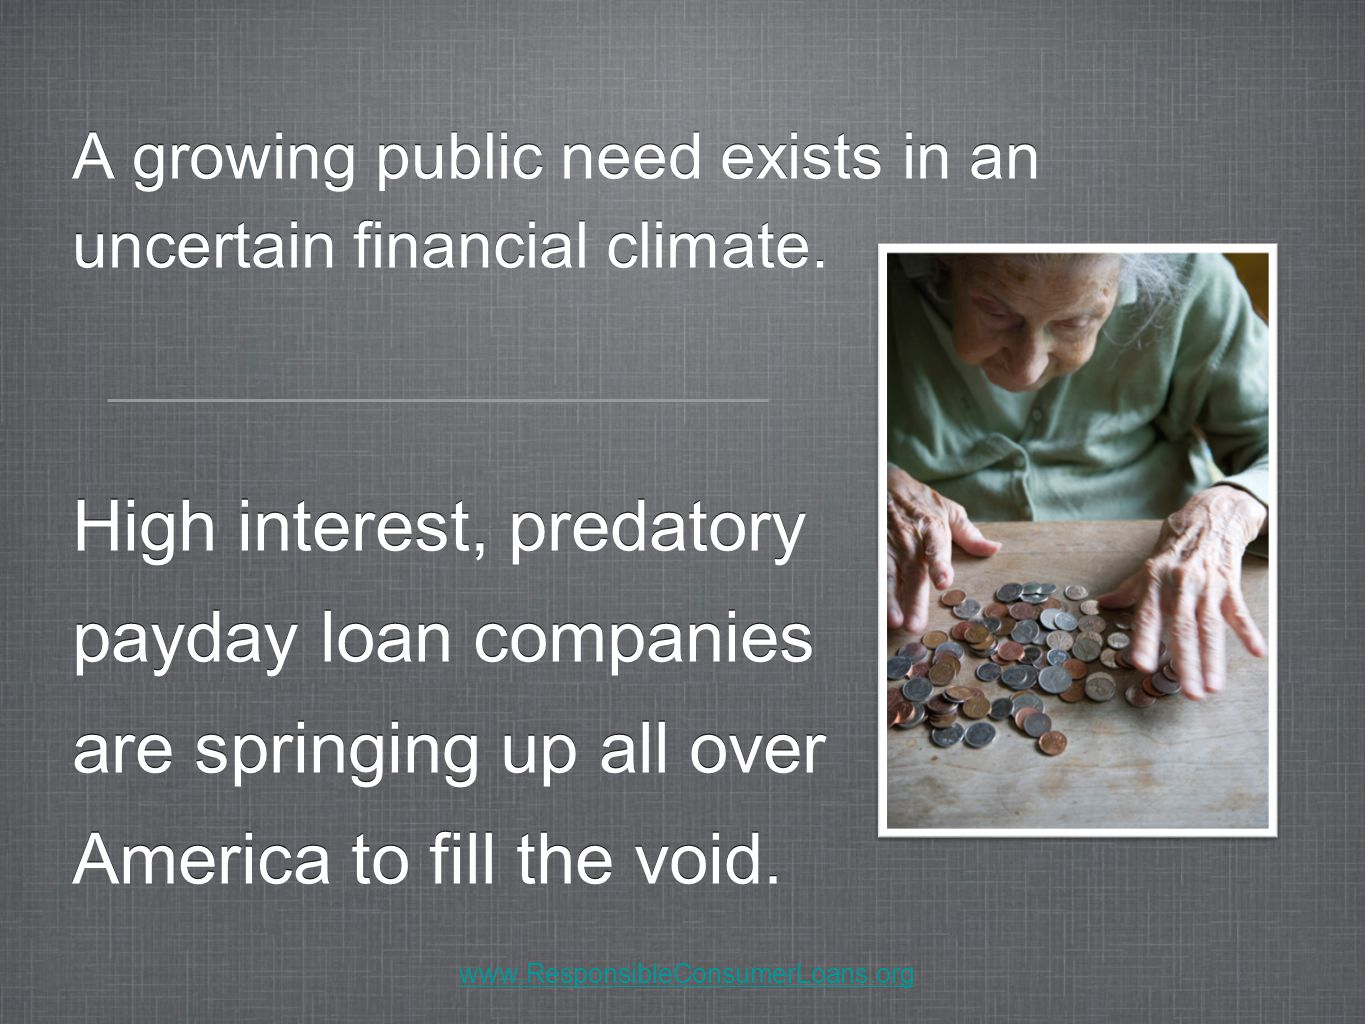 A growing public need exists in an uncertain financial climate.